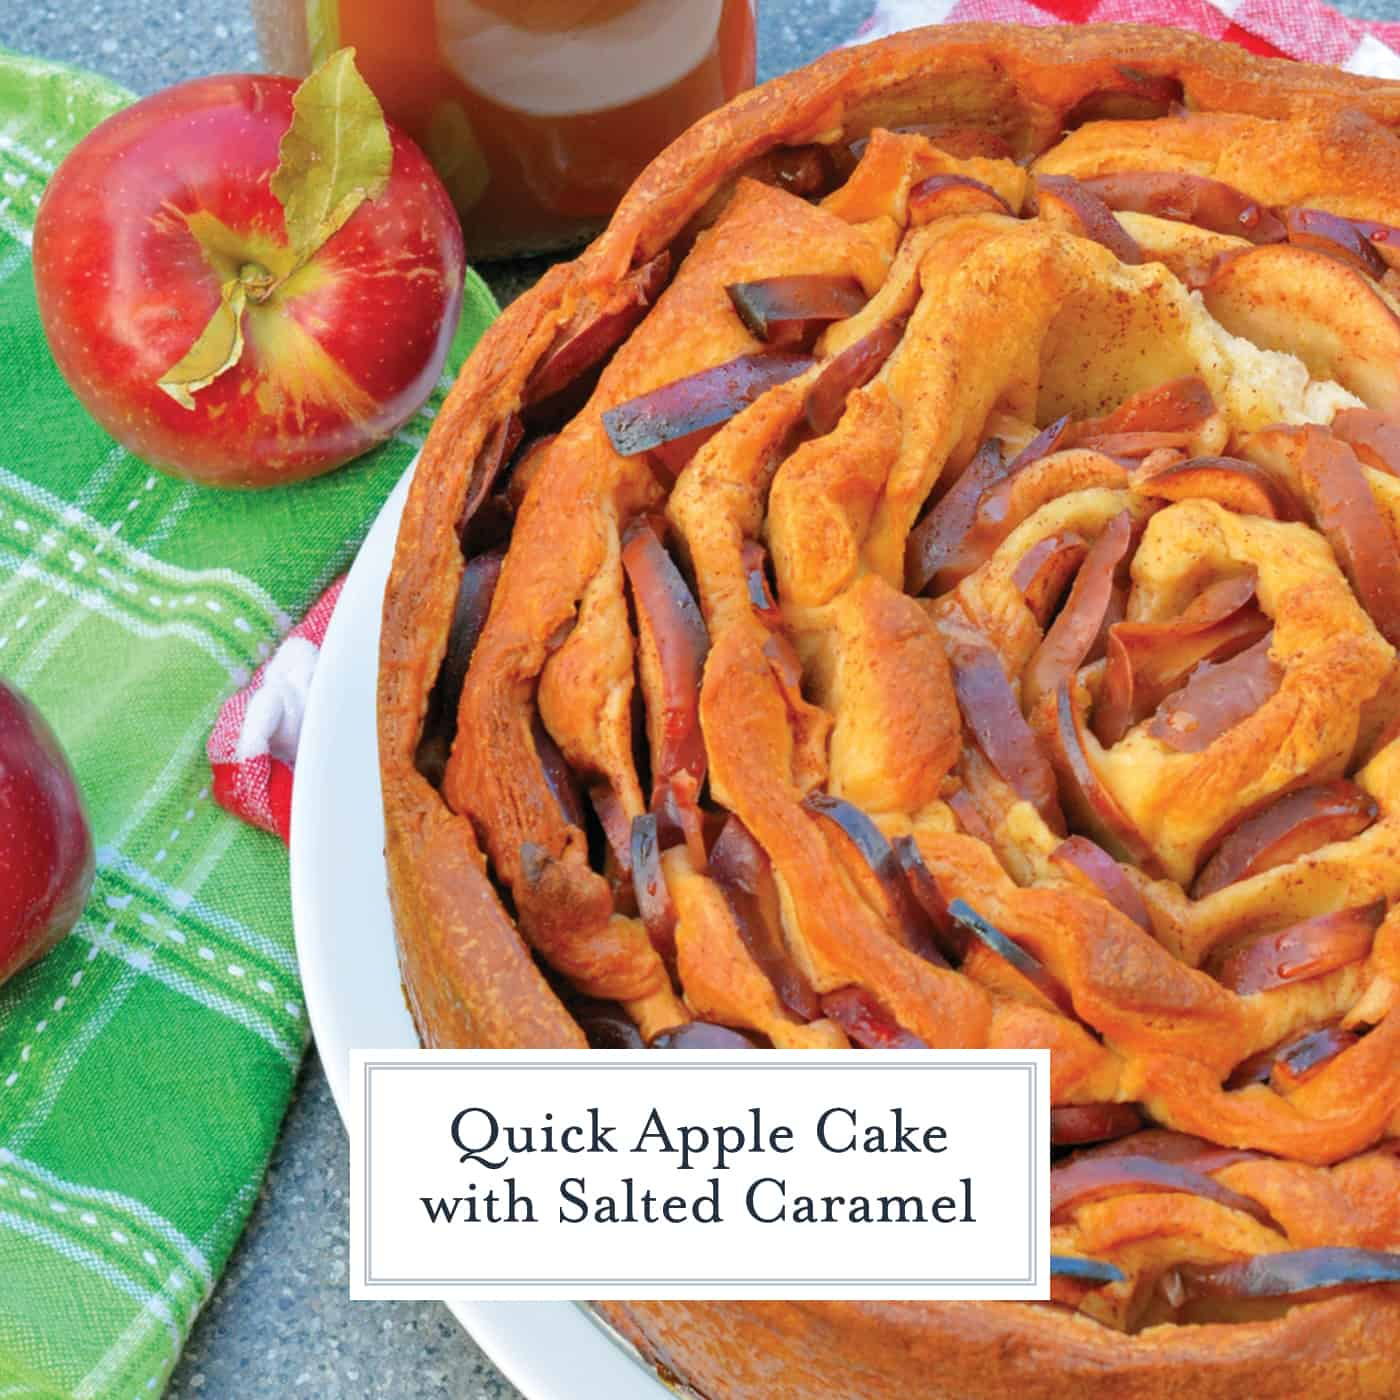 Quick Apple Cake is an easy cake that uses crescent rolls and fresh apple slices with butter, cinnamon and nutmeg. Top it off with salted caramel sauce for a decadent treat! #quickapplecake www.savoryexperiments.com